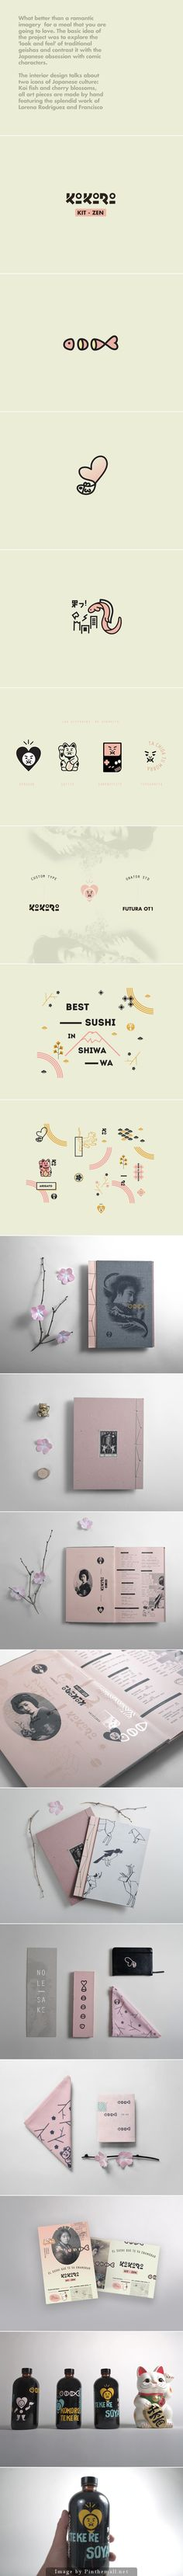 Lovely Japanese fusion identity packaging branding curated by packaging Diva PD